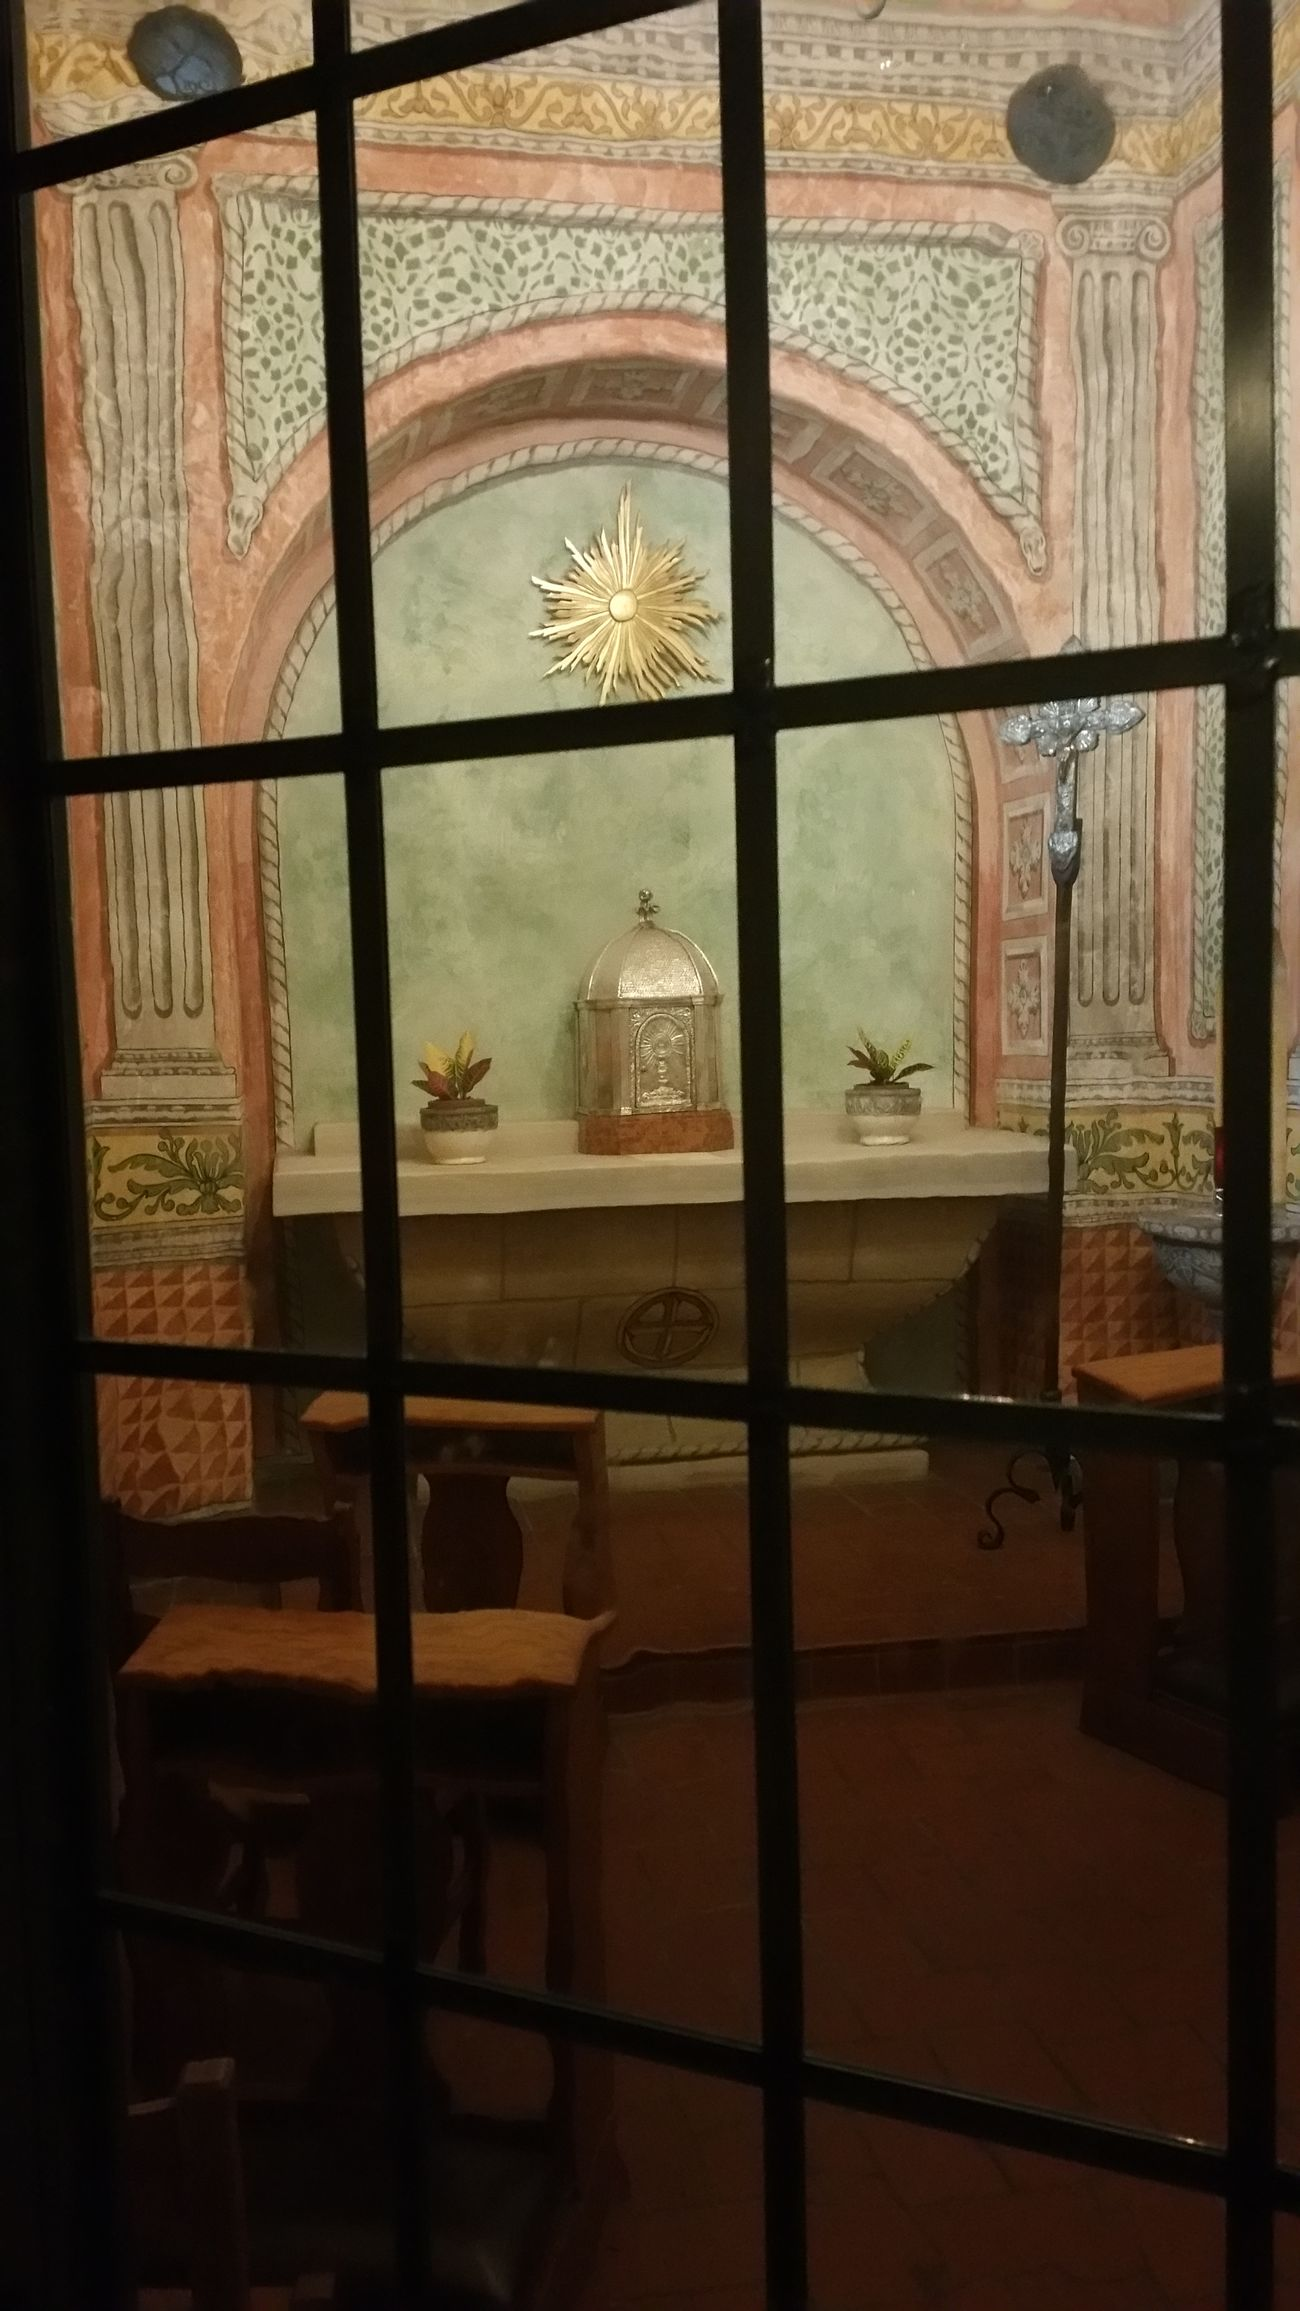 The Secret Spaces Architecture Window Place Of Worship No People Religion History Mission, Chapel, 1800's